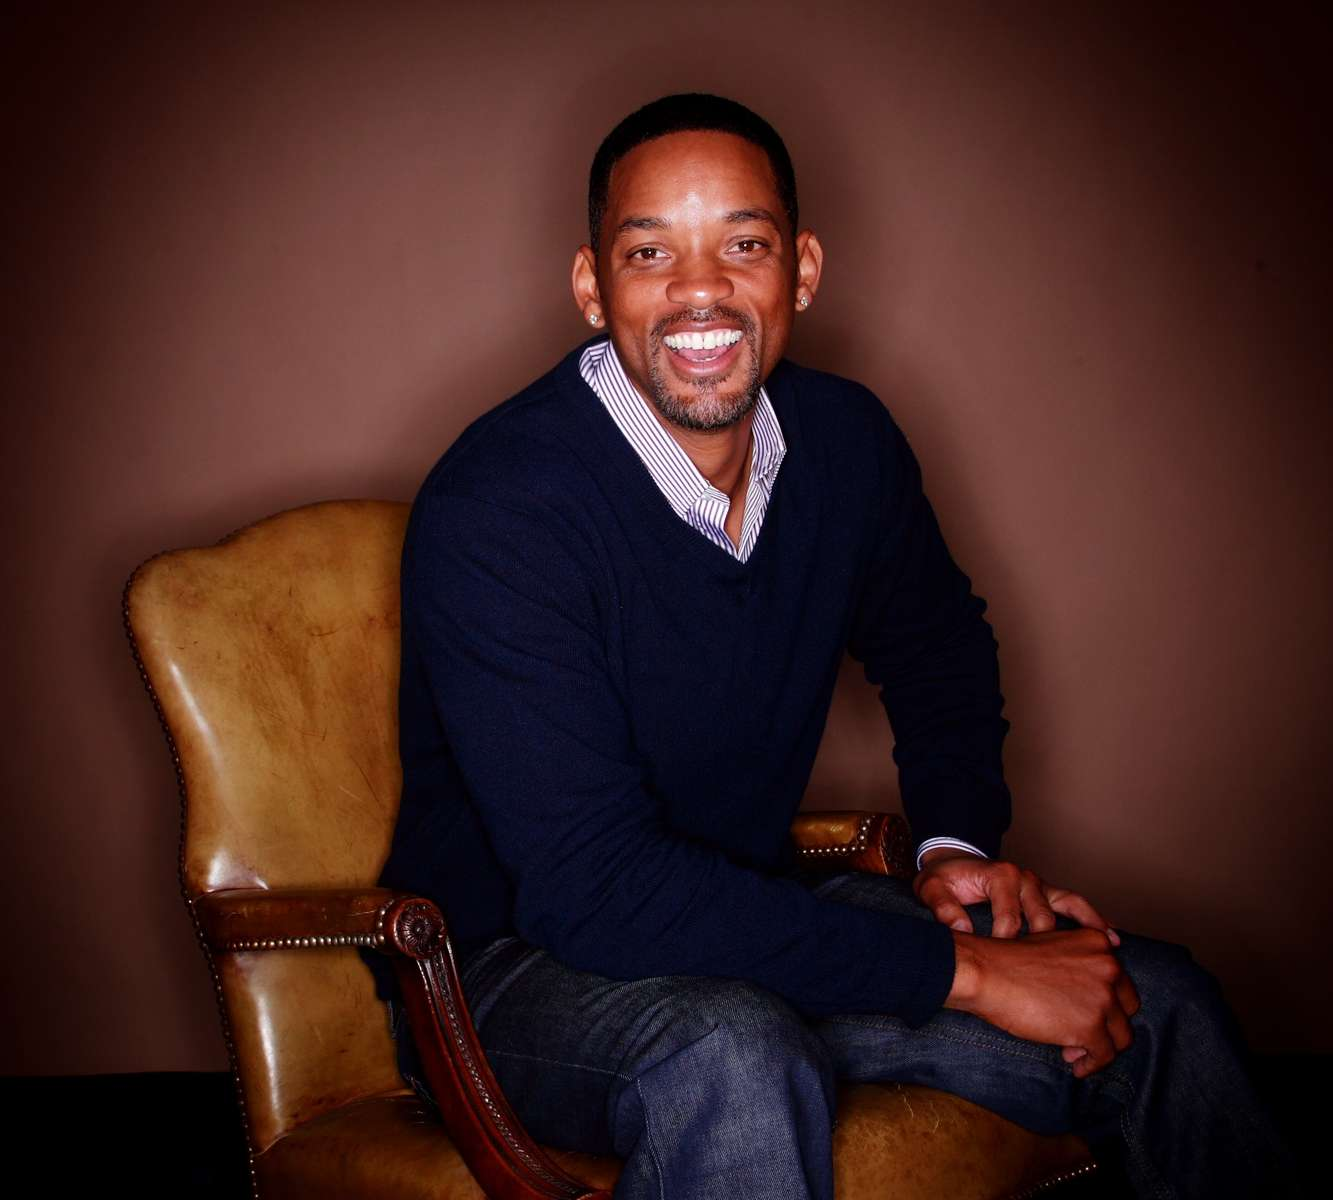 zWill-Smith-Laugh-2